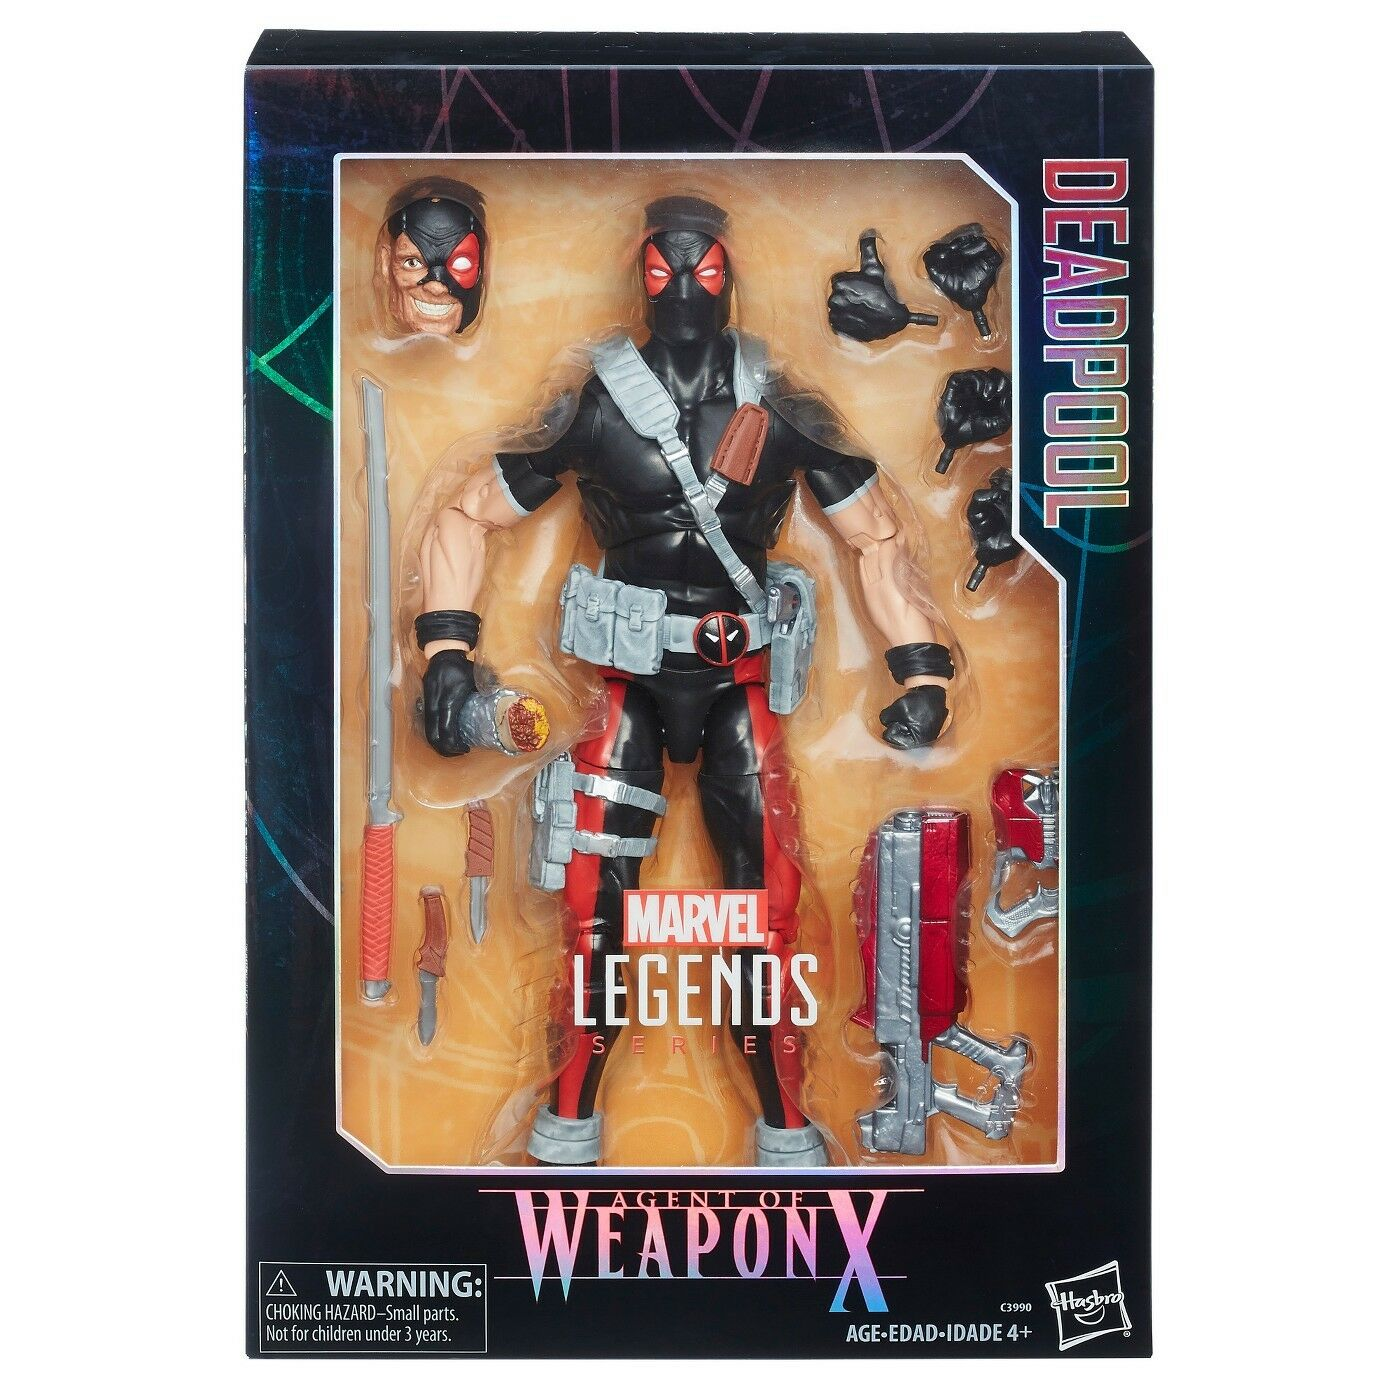 MARVEL MARVEL MARVEL LEGENDS SERIES DEADPOOL AGENT OF WEAPON X 12 Inch Action Figure Brand New 63372b